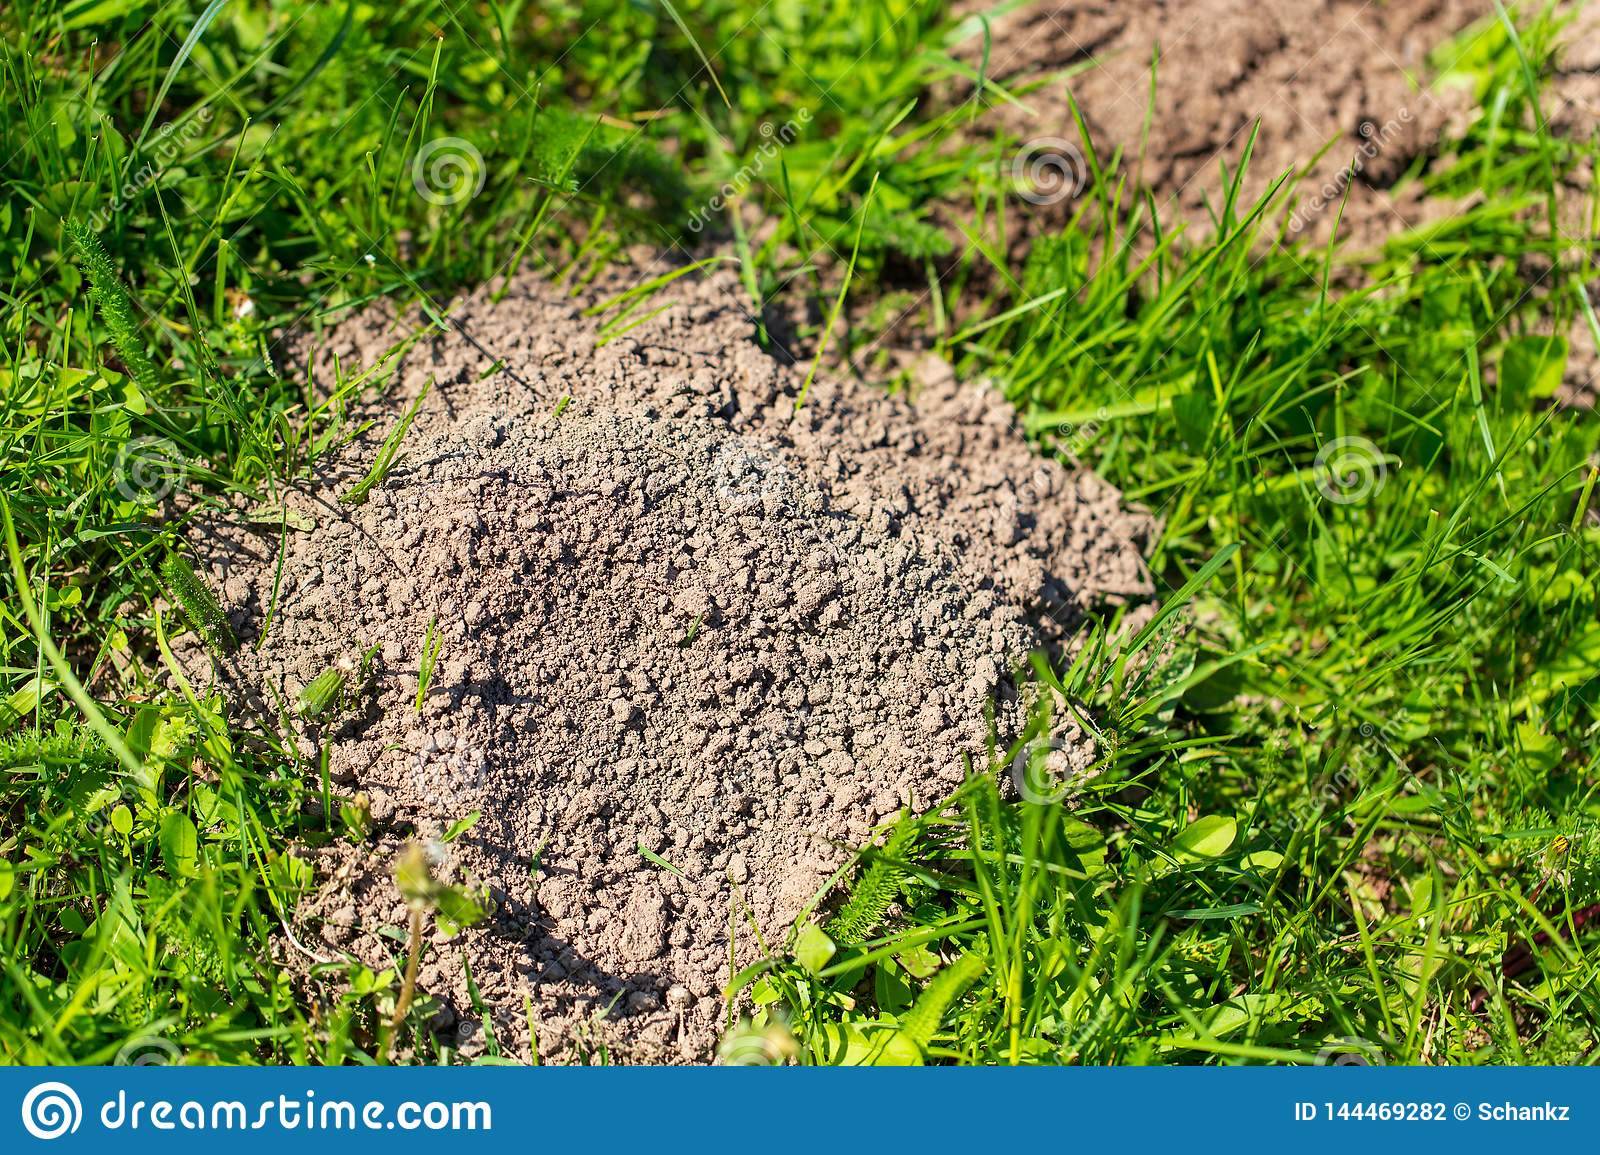 Mole dug in the ground in spring